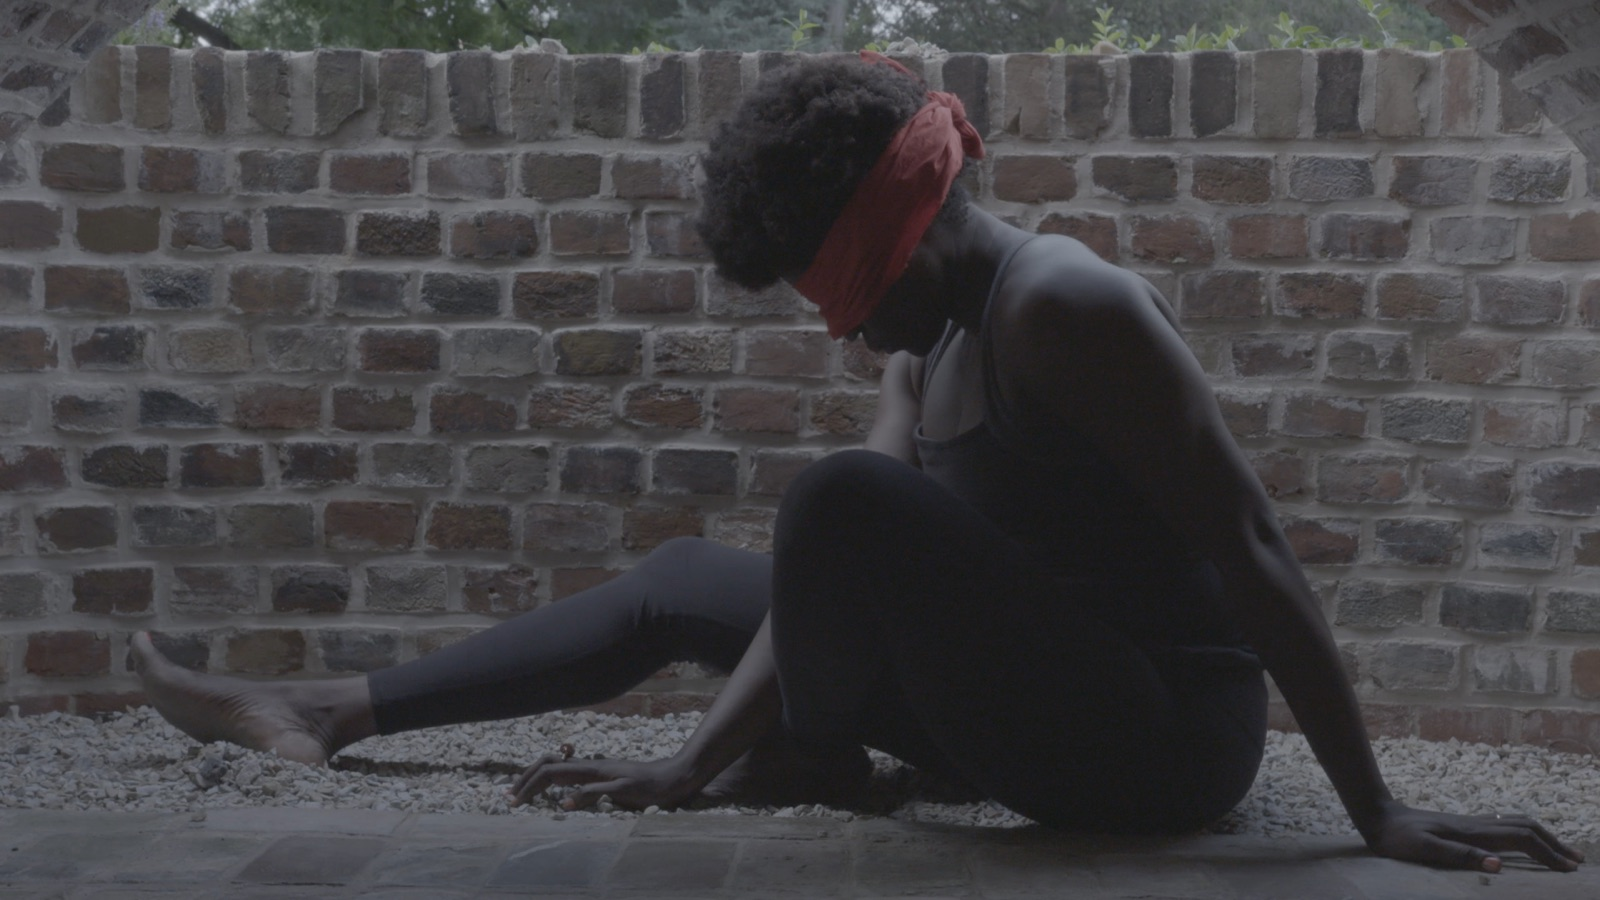 A still from  Show Me What You Want Me To See shot by Lendl Tellington.